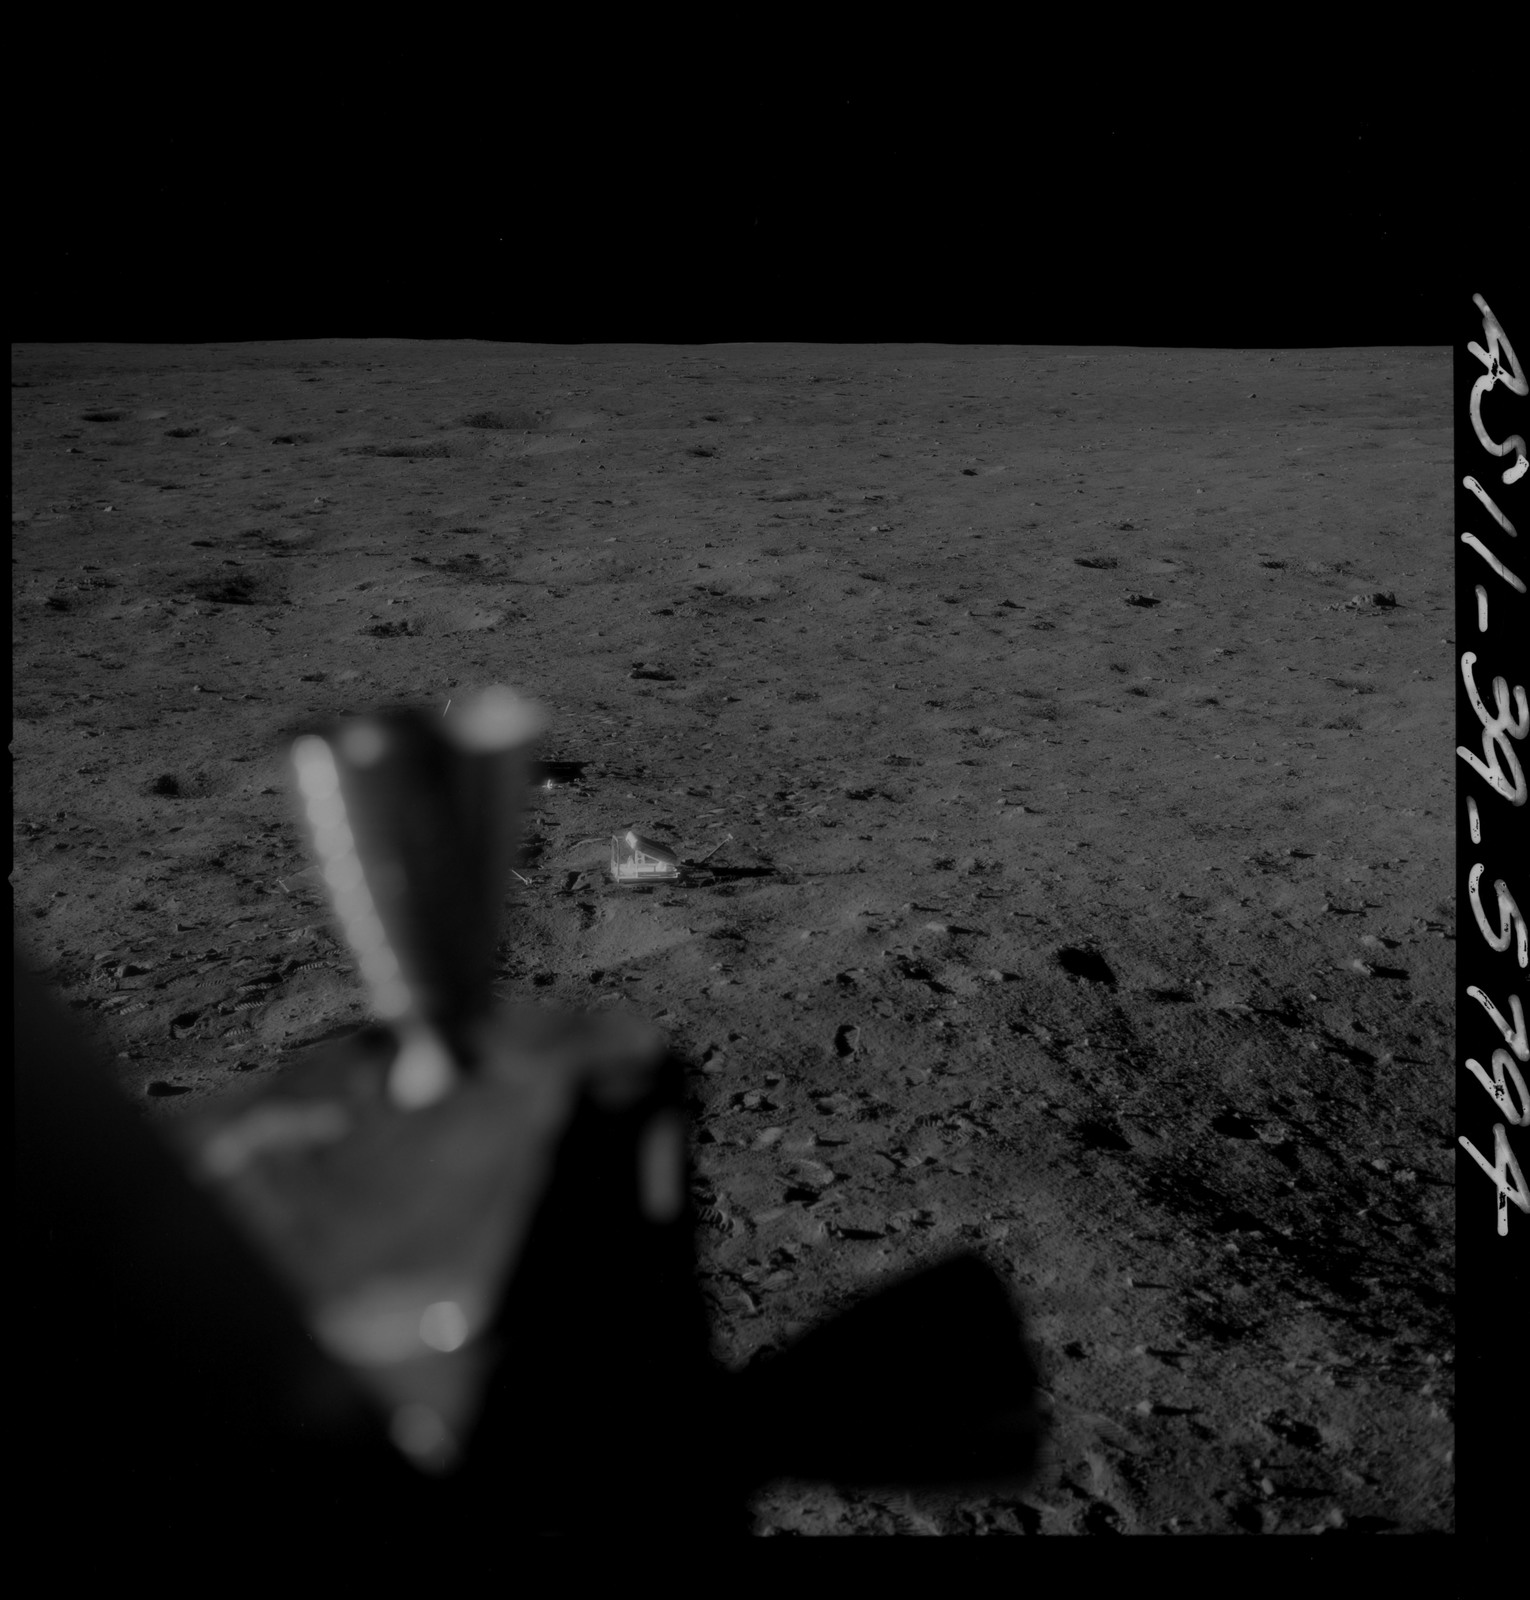 AS11-39-5794 - Apollo 11 - Apollo 11 Mission image - Lunar module thrusters with lunar surface in background